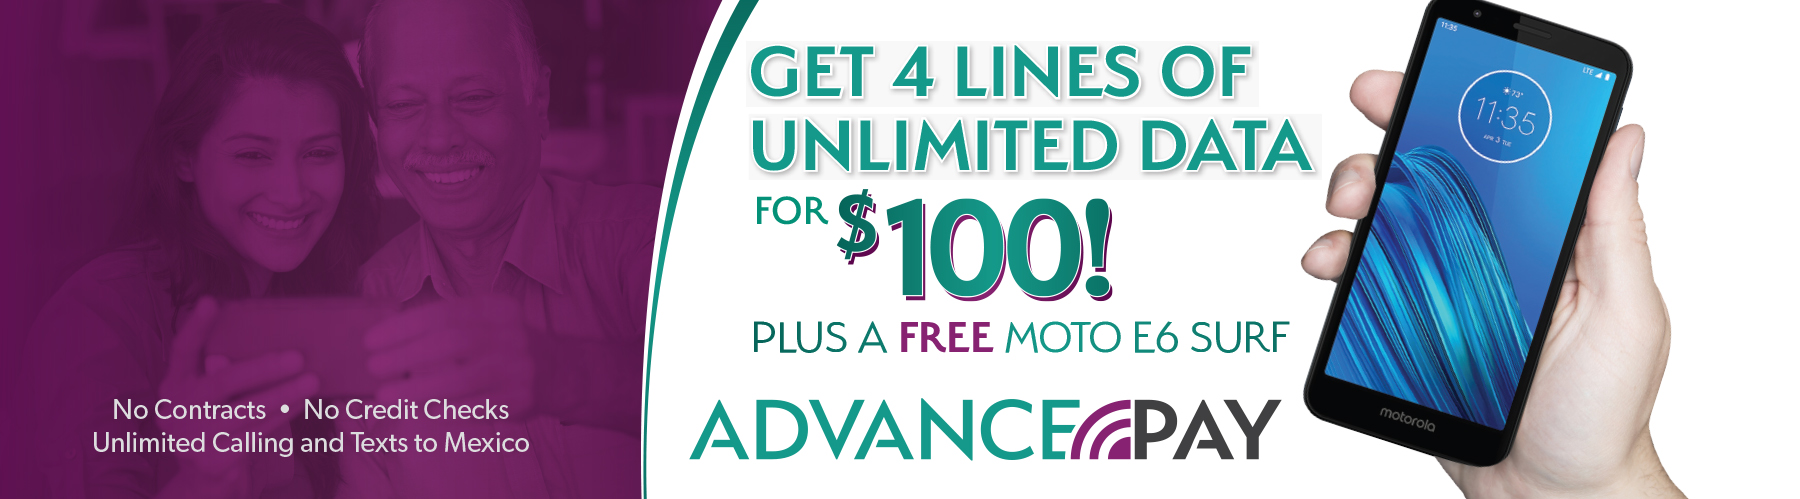 Get 4 Lines of Unlimited Data for $100 Plus a FREE Moto E6 Surf!